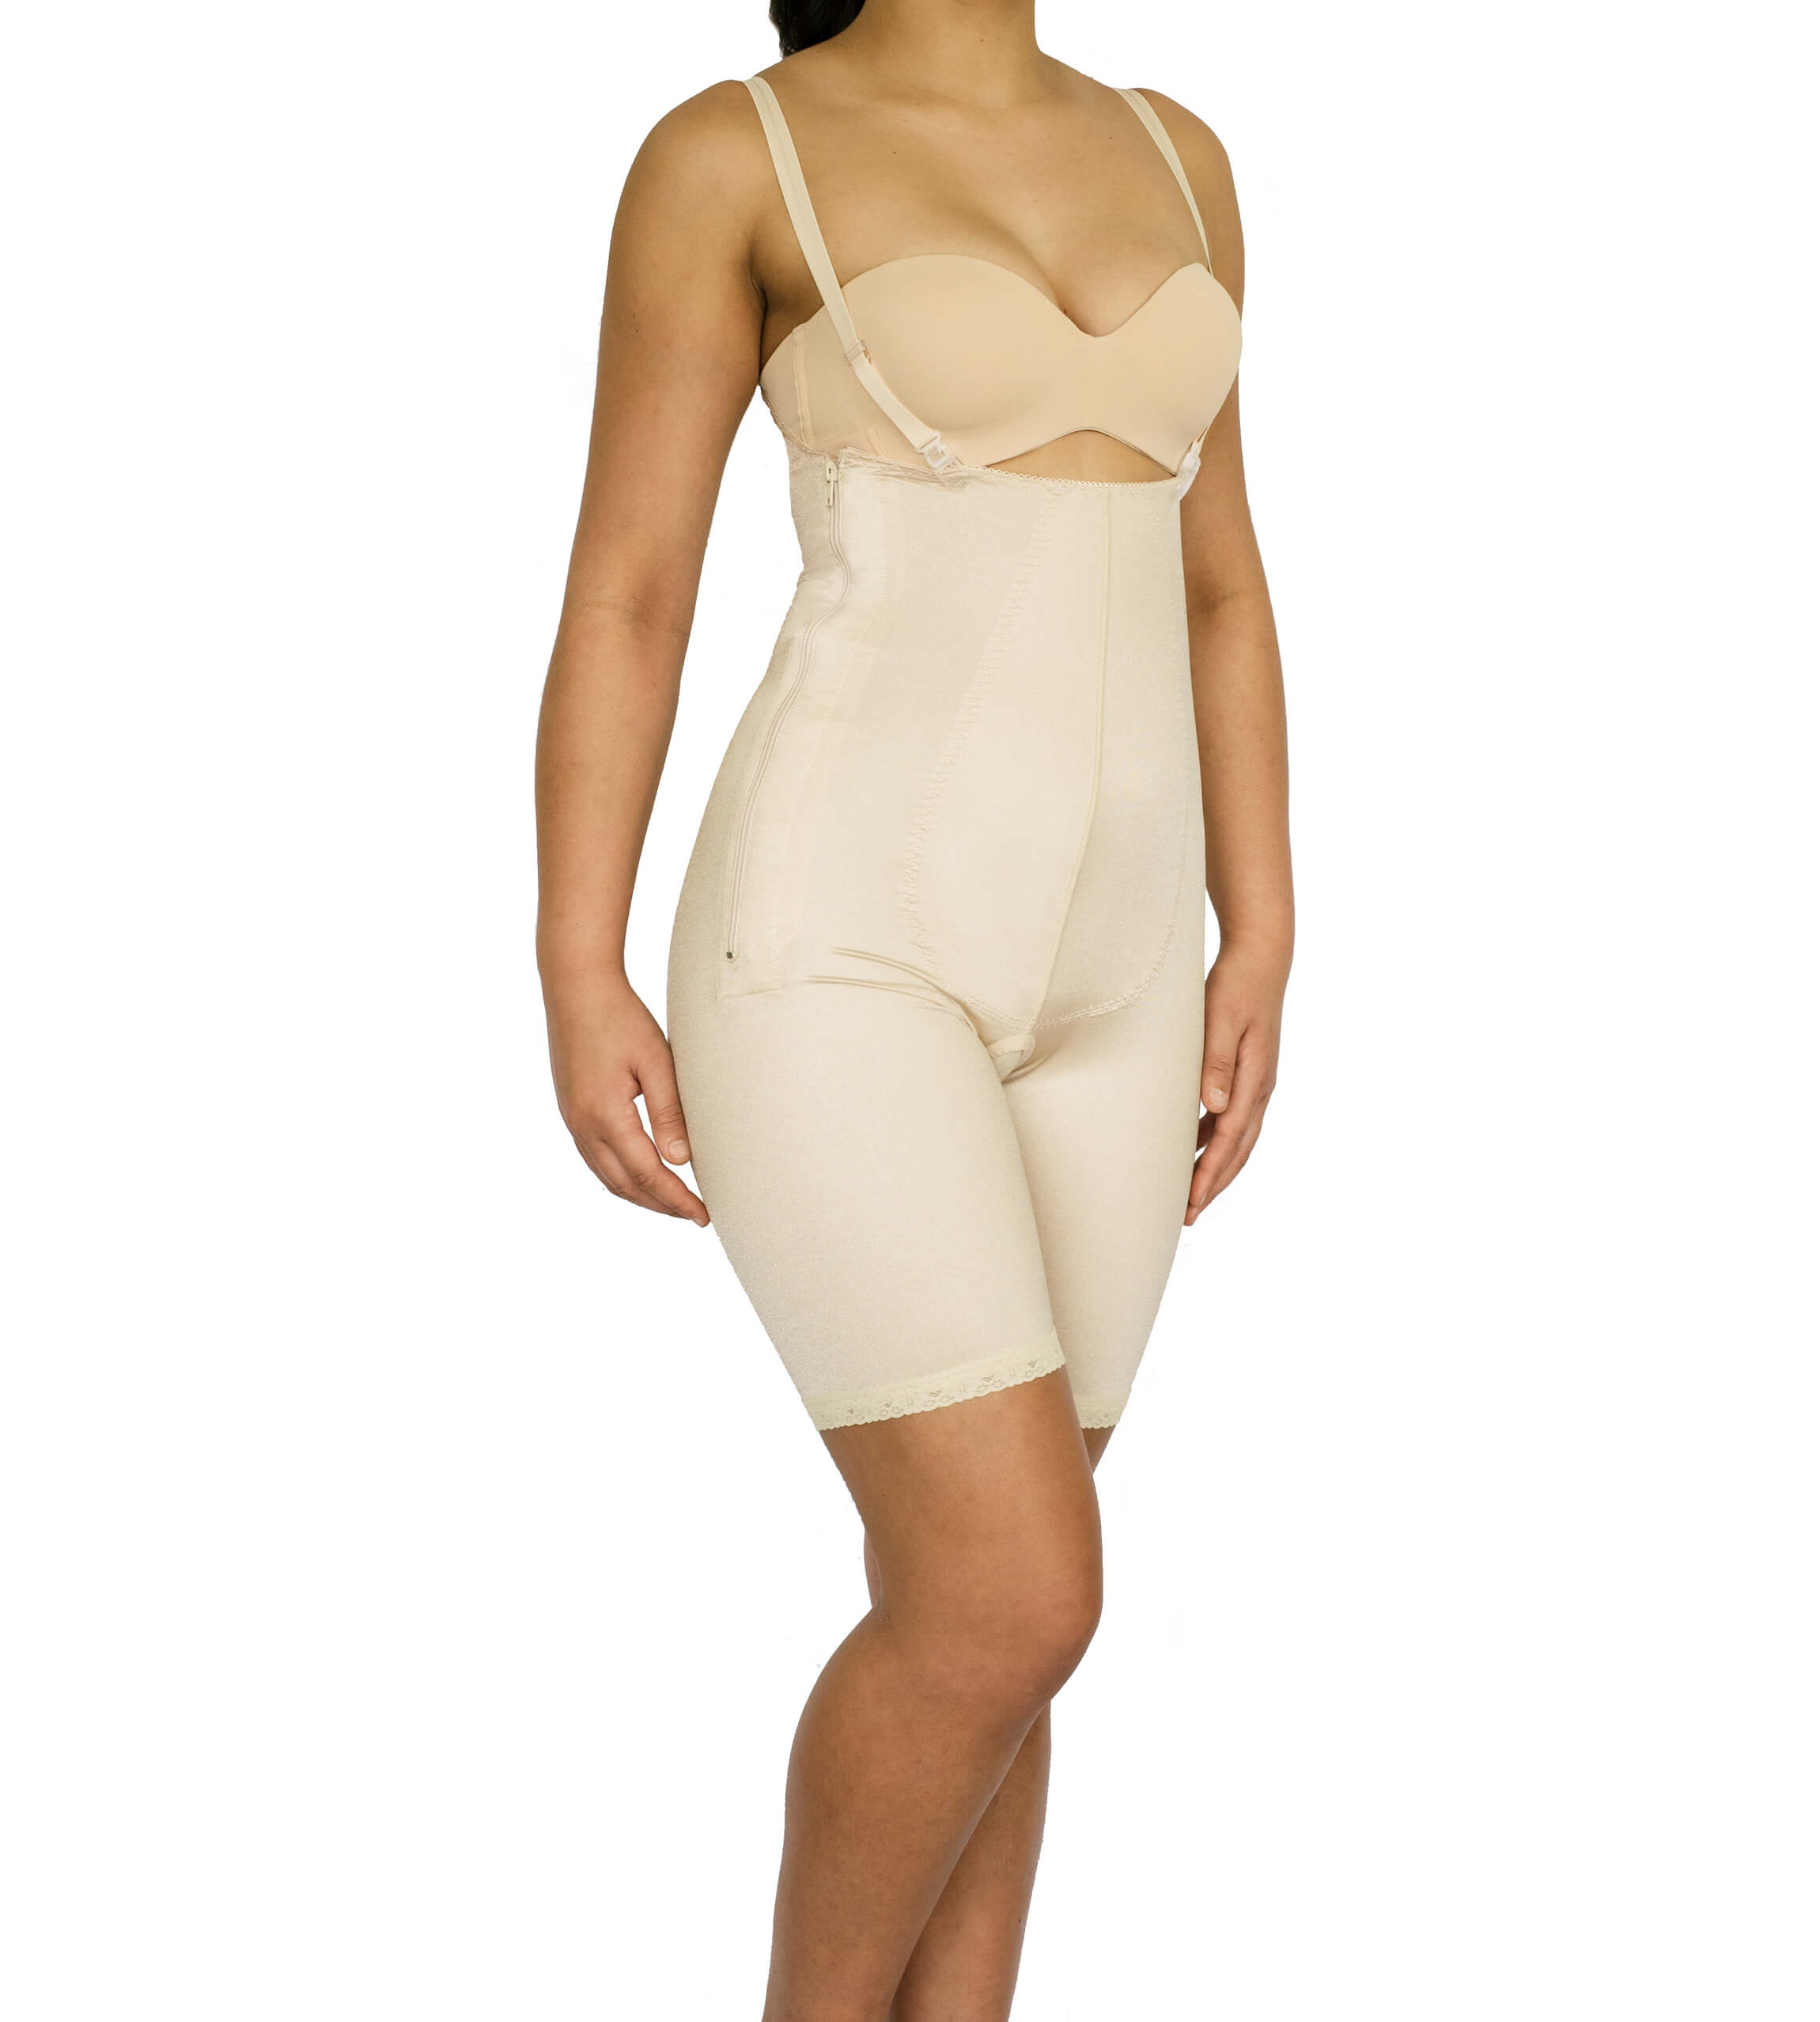 Female, Pants, Mid thigh, Underbust, Normal Support, side Zip, Open crotch